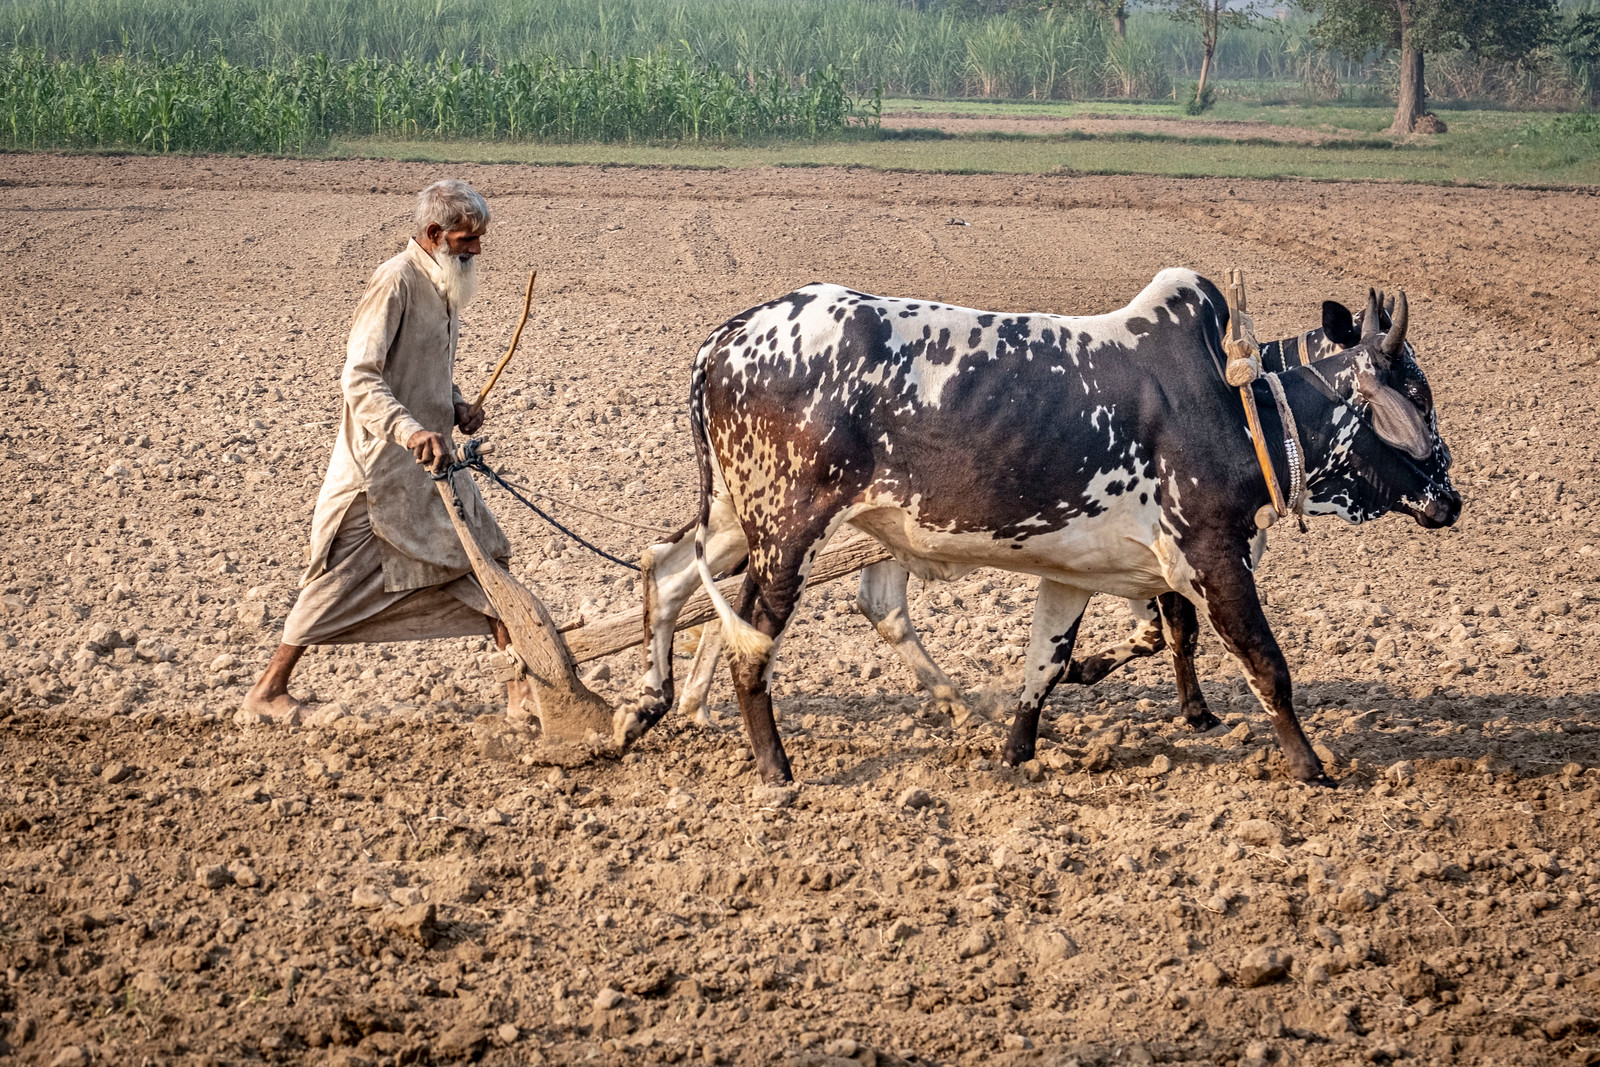 Punjabi farmer plowing with bullocks and a wooden plow Photo by Amrinder Singh